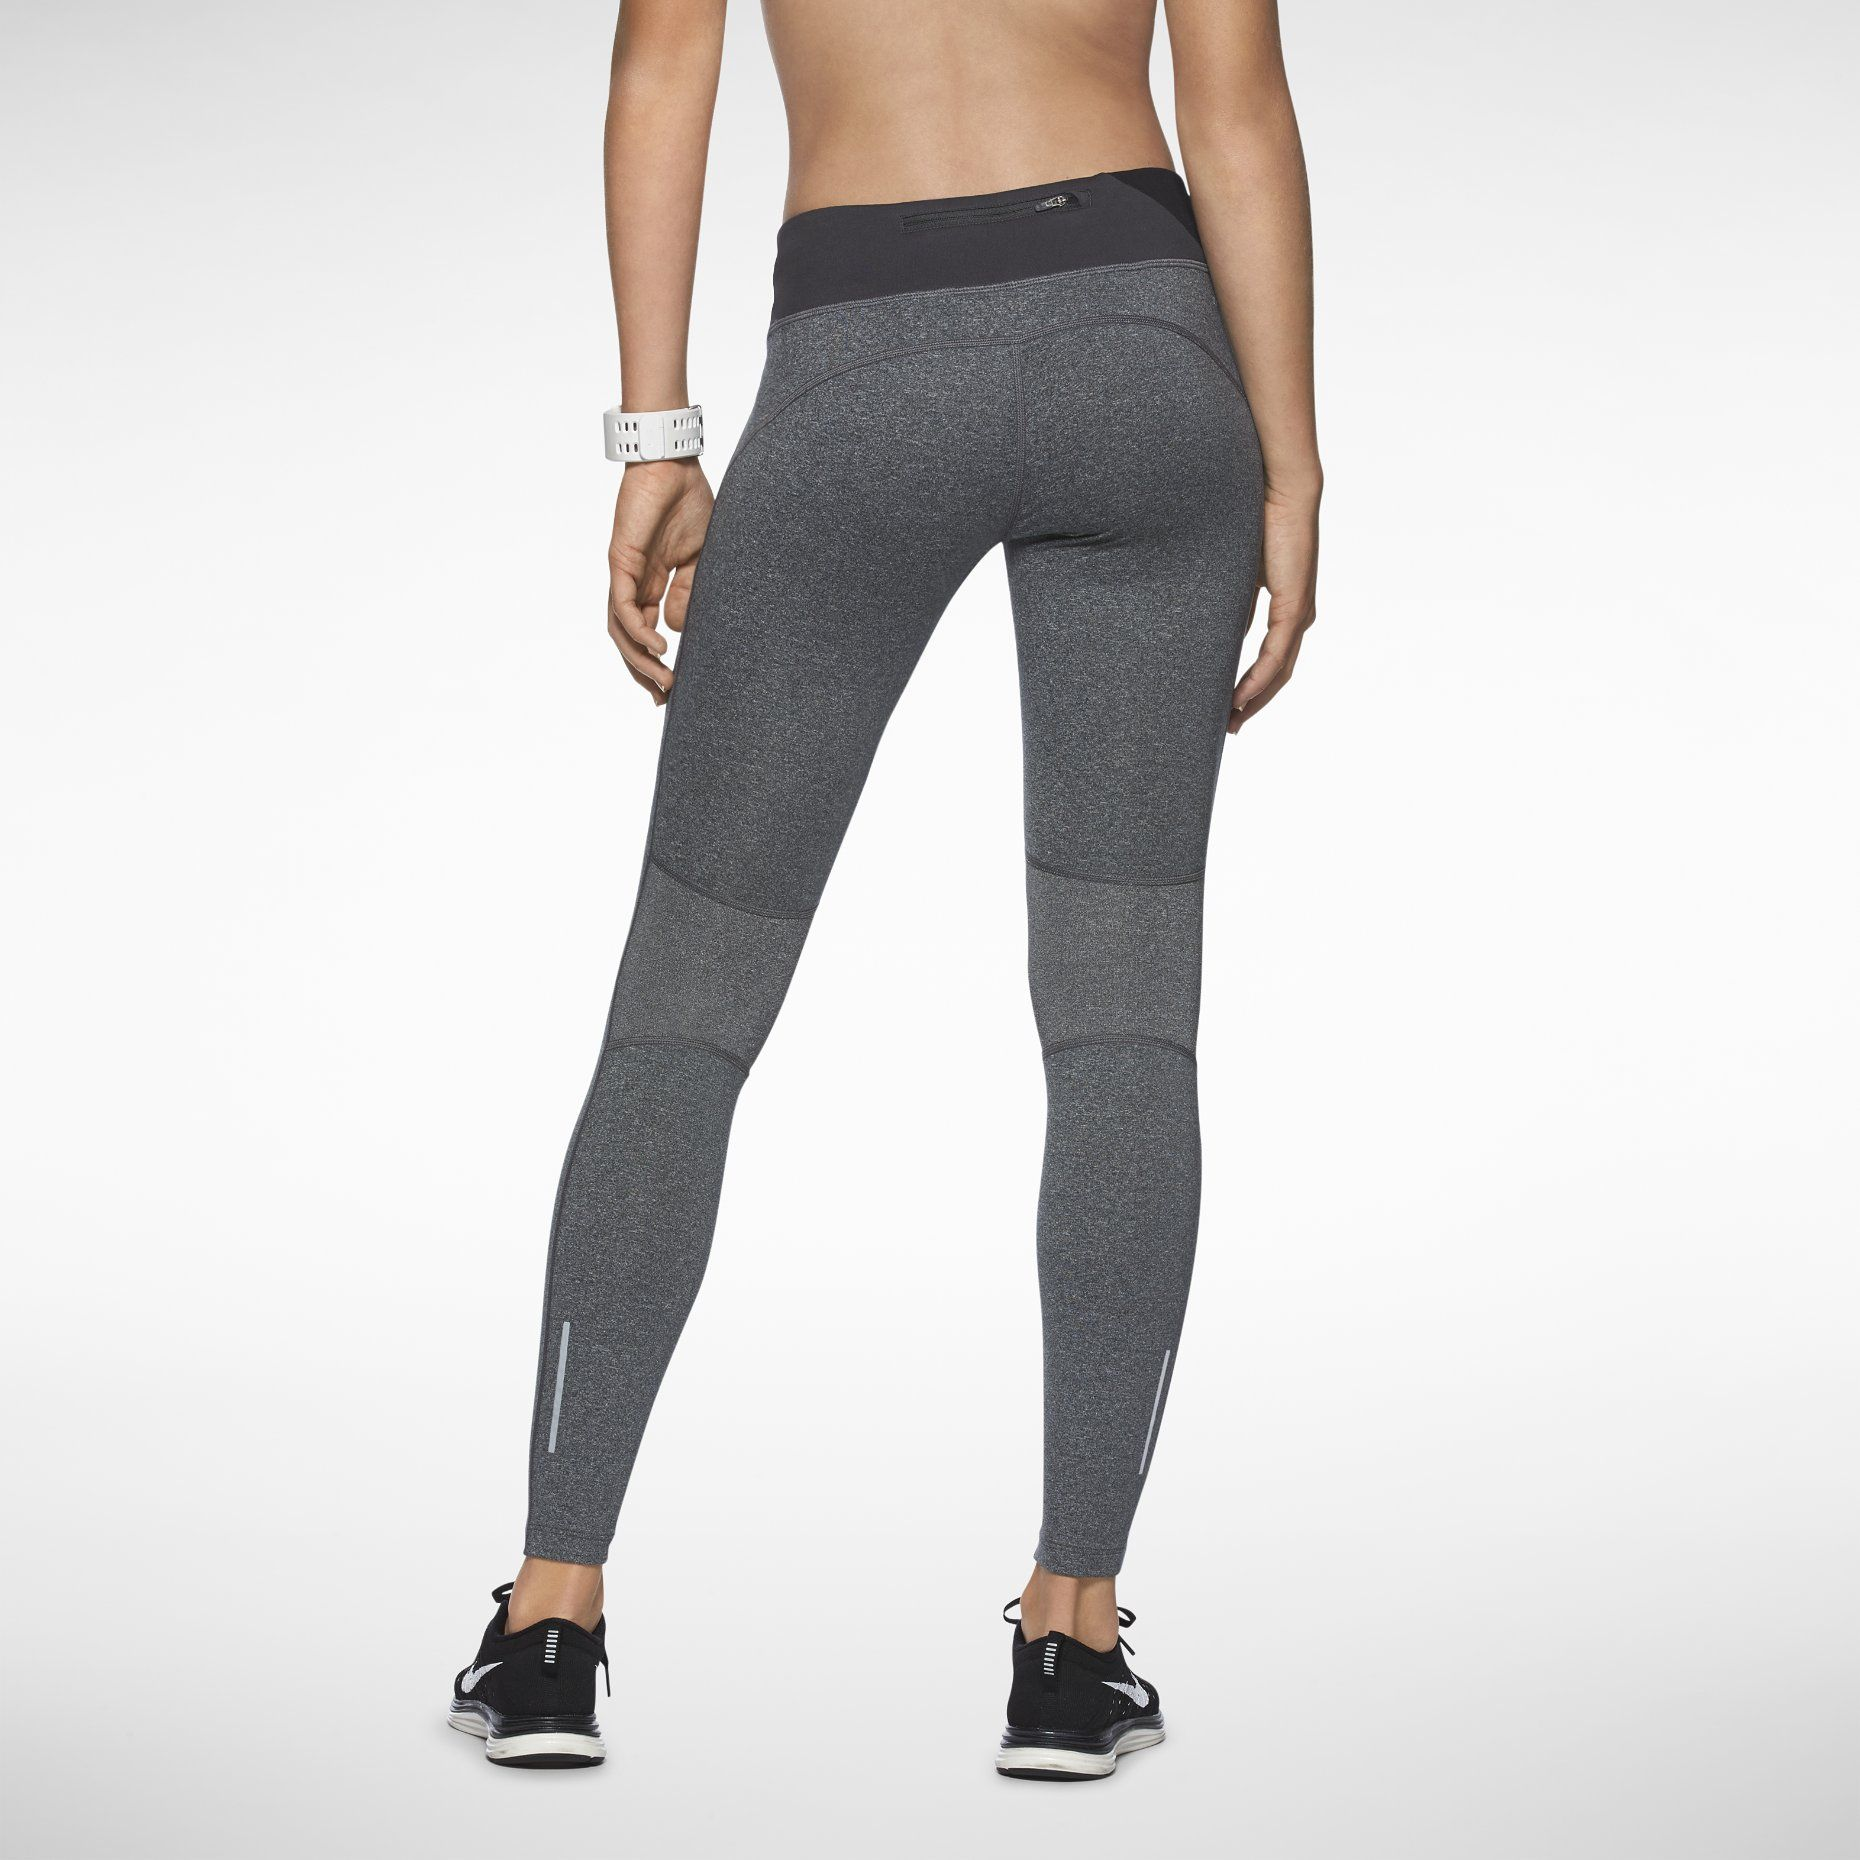 Nike Store. Nike Epic Run Women's Running Tights (With